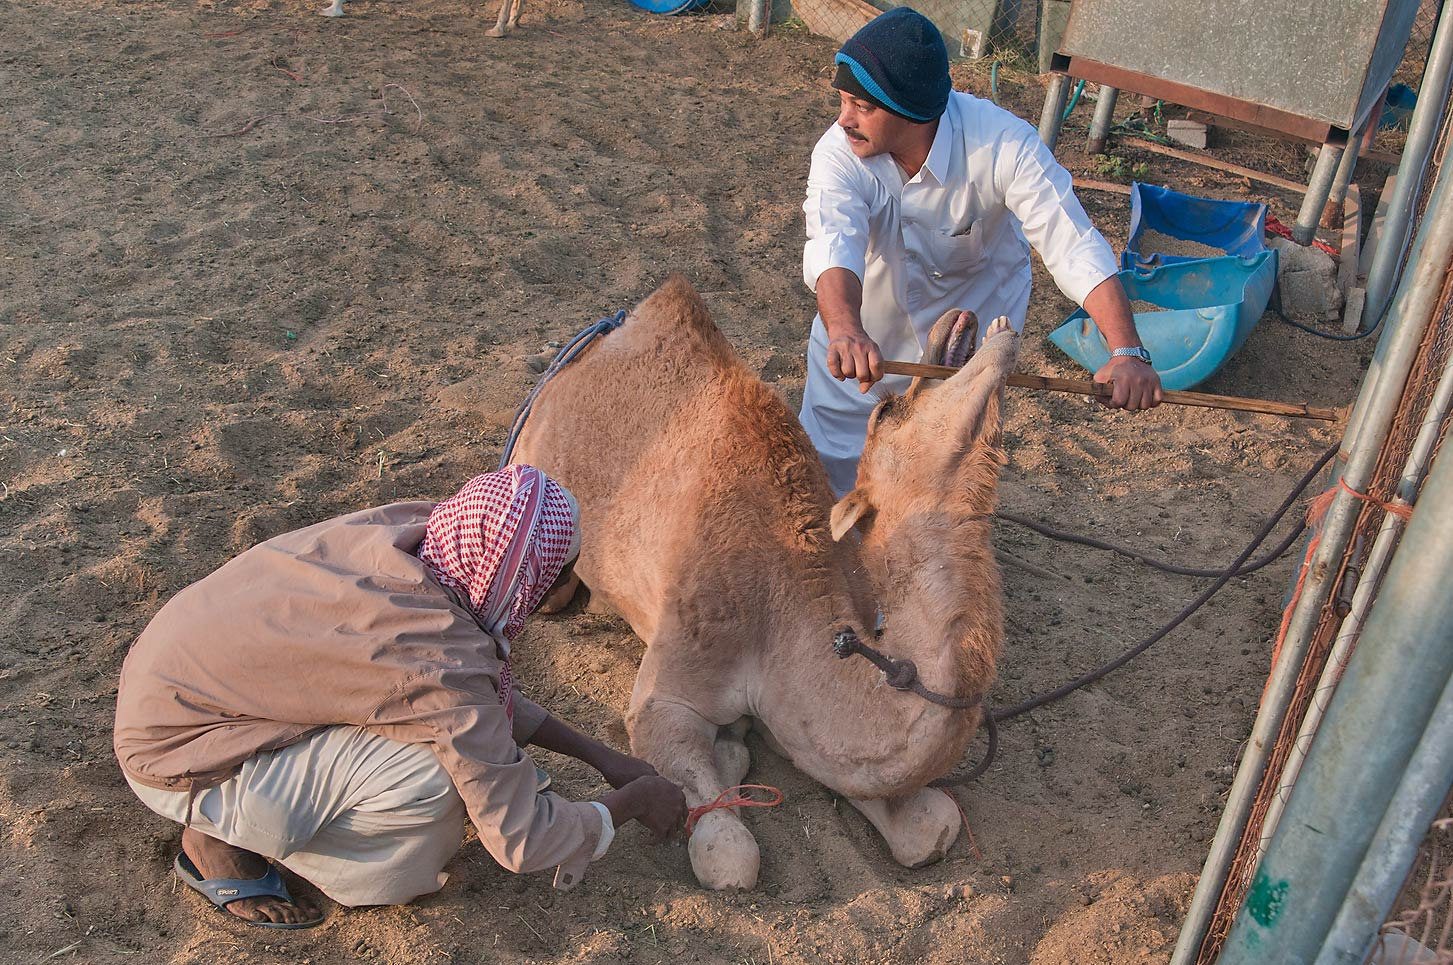 Strapping a camel and preparing it for crane-lift in Camel Market (Souq). Doha, Qatar